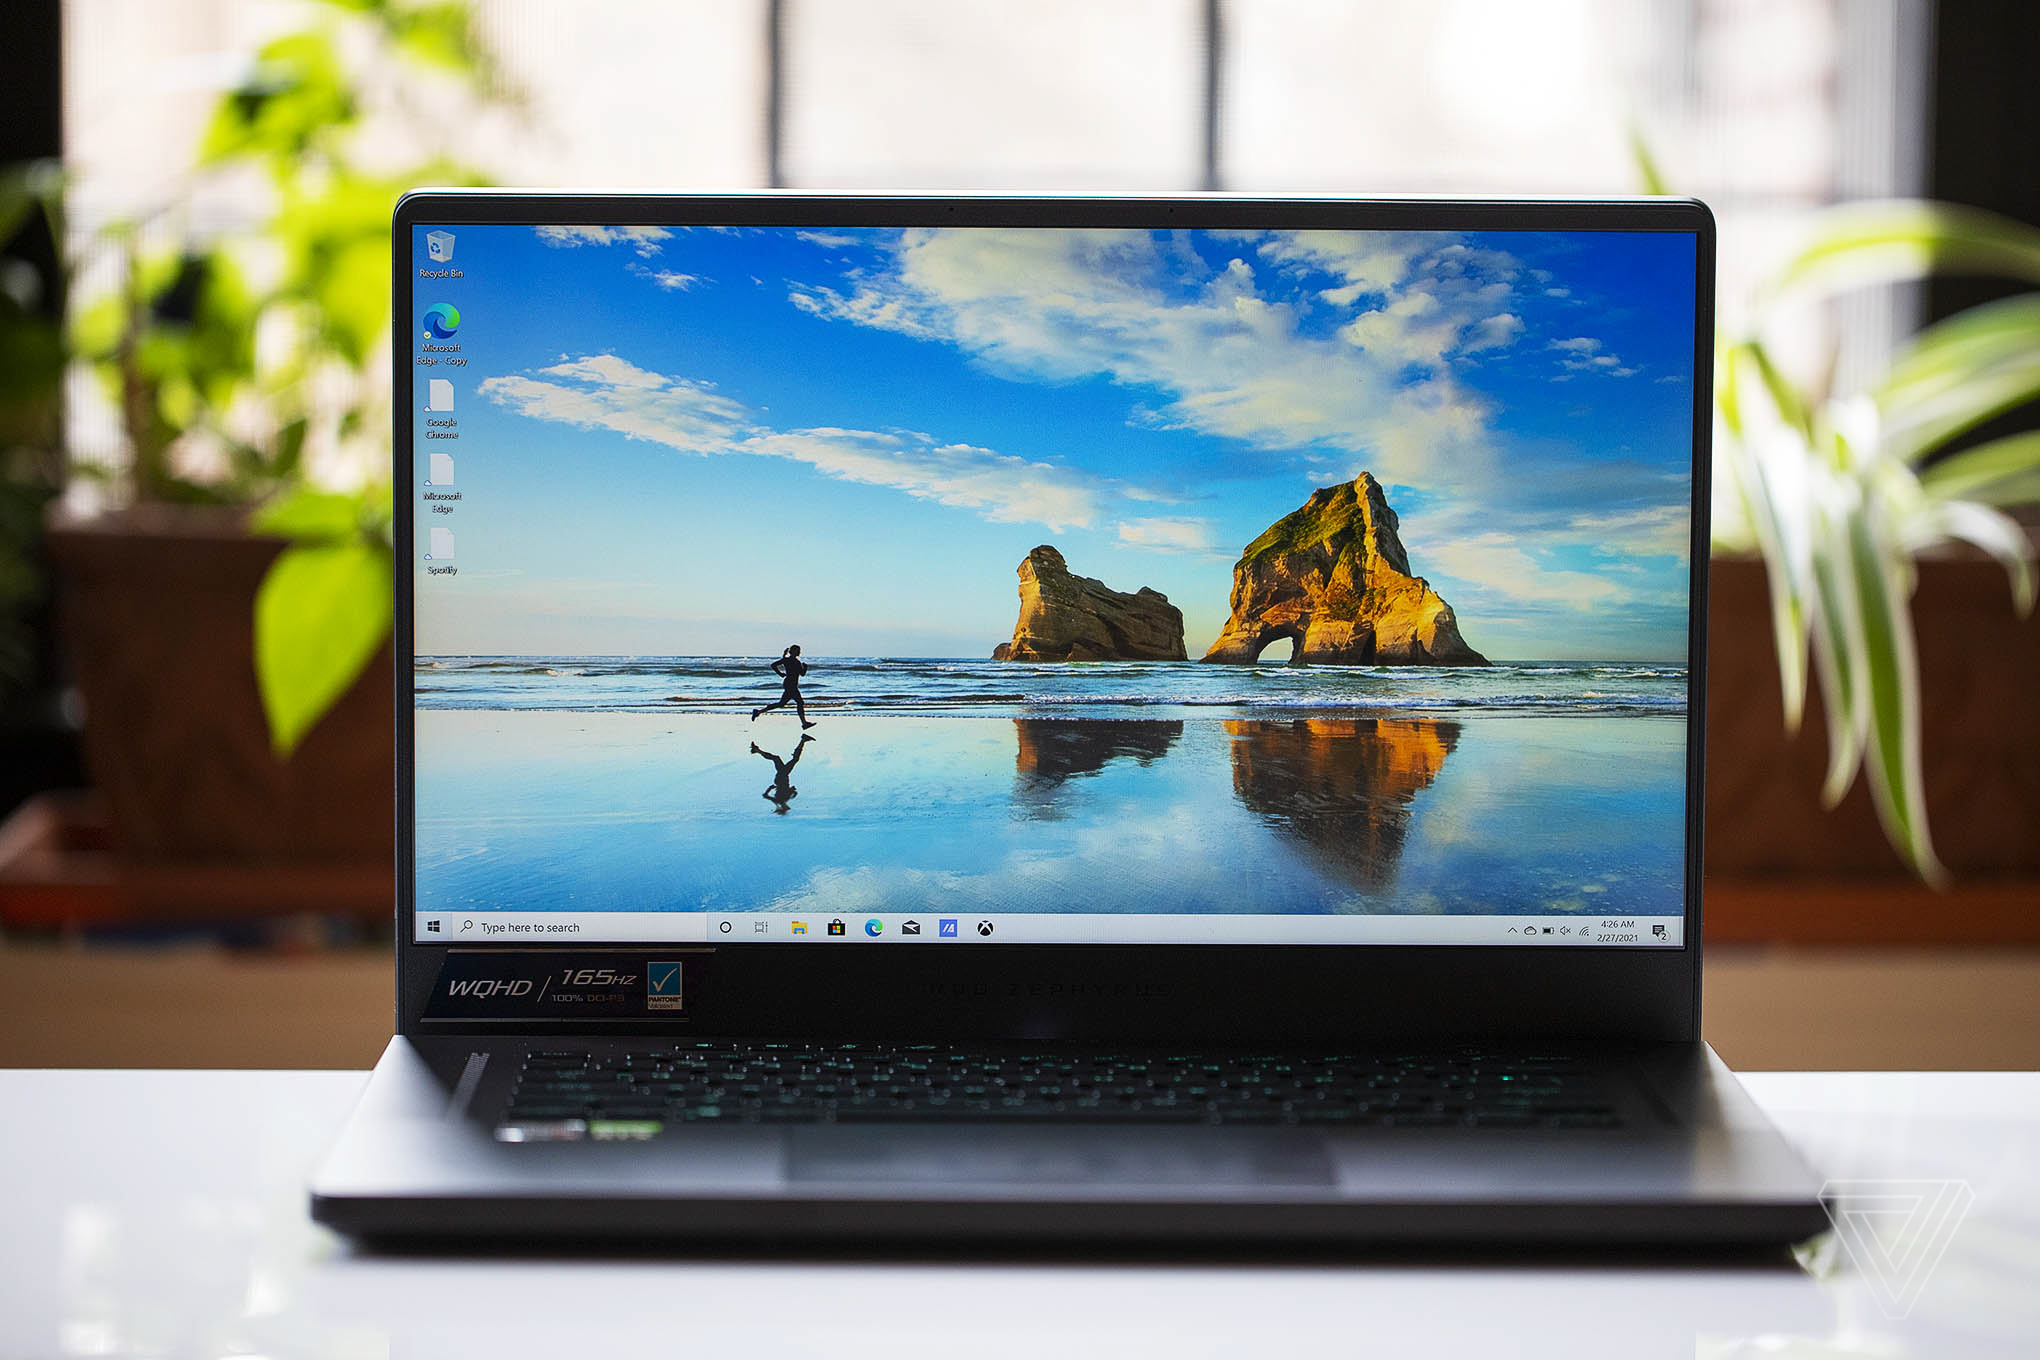 The Asus ROG Zephyrus G14 set on a table with two plants and a window in the background, open. The screen displays two rocks on a beach with a person running towards them across a body of water.